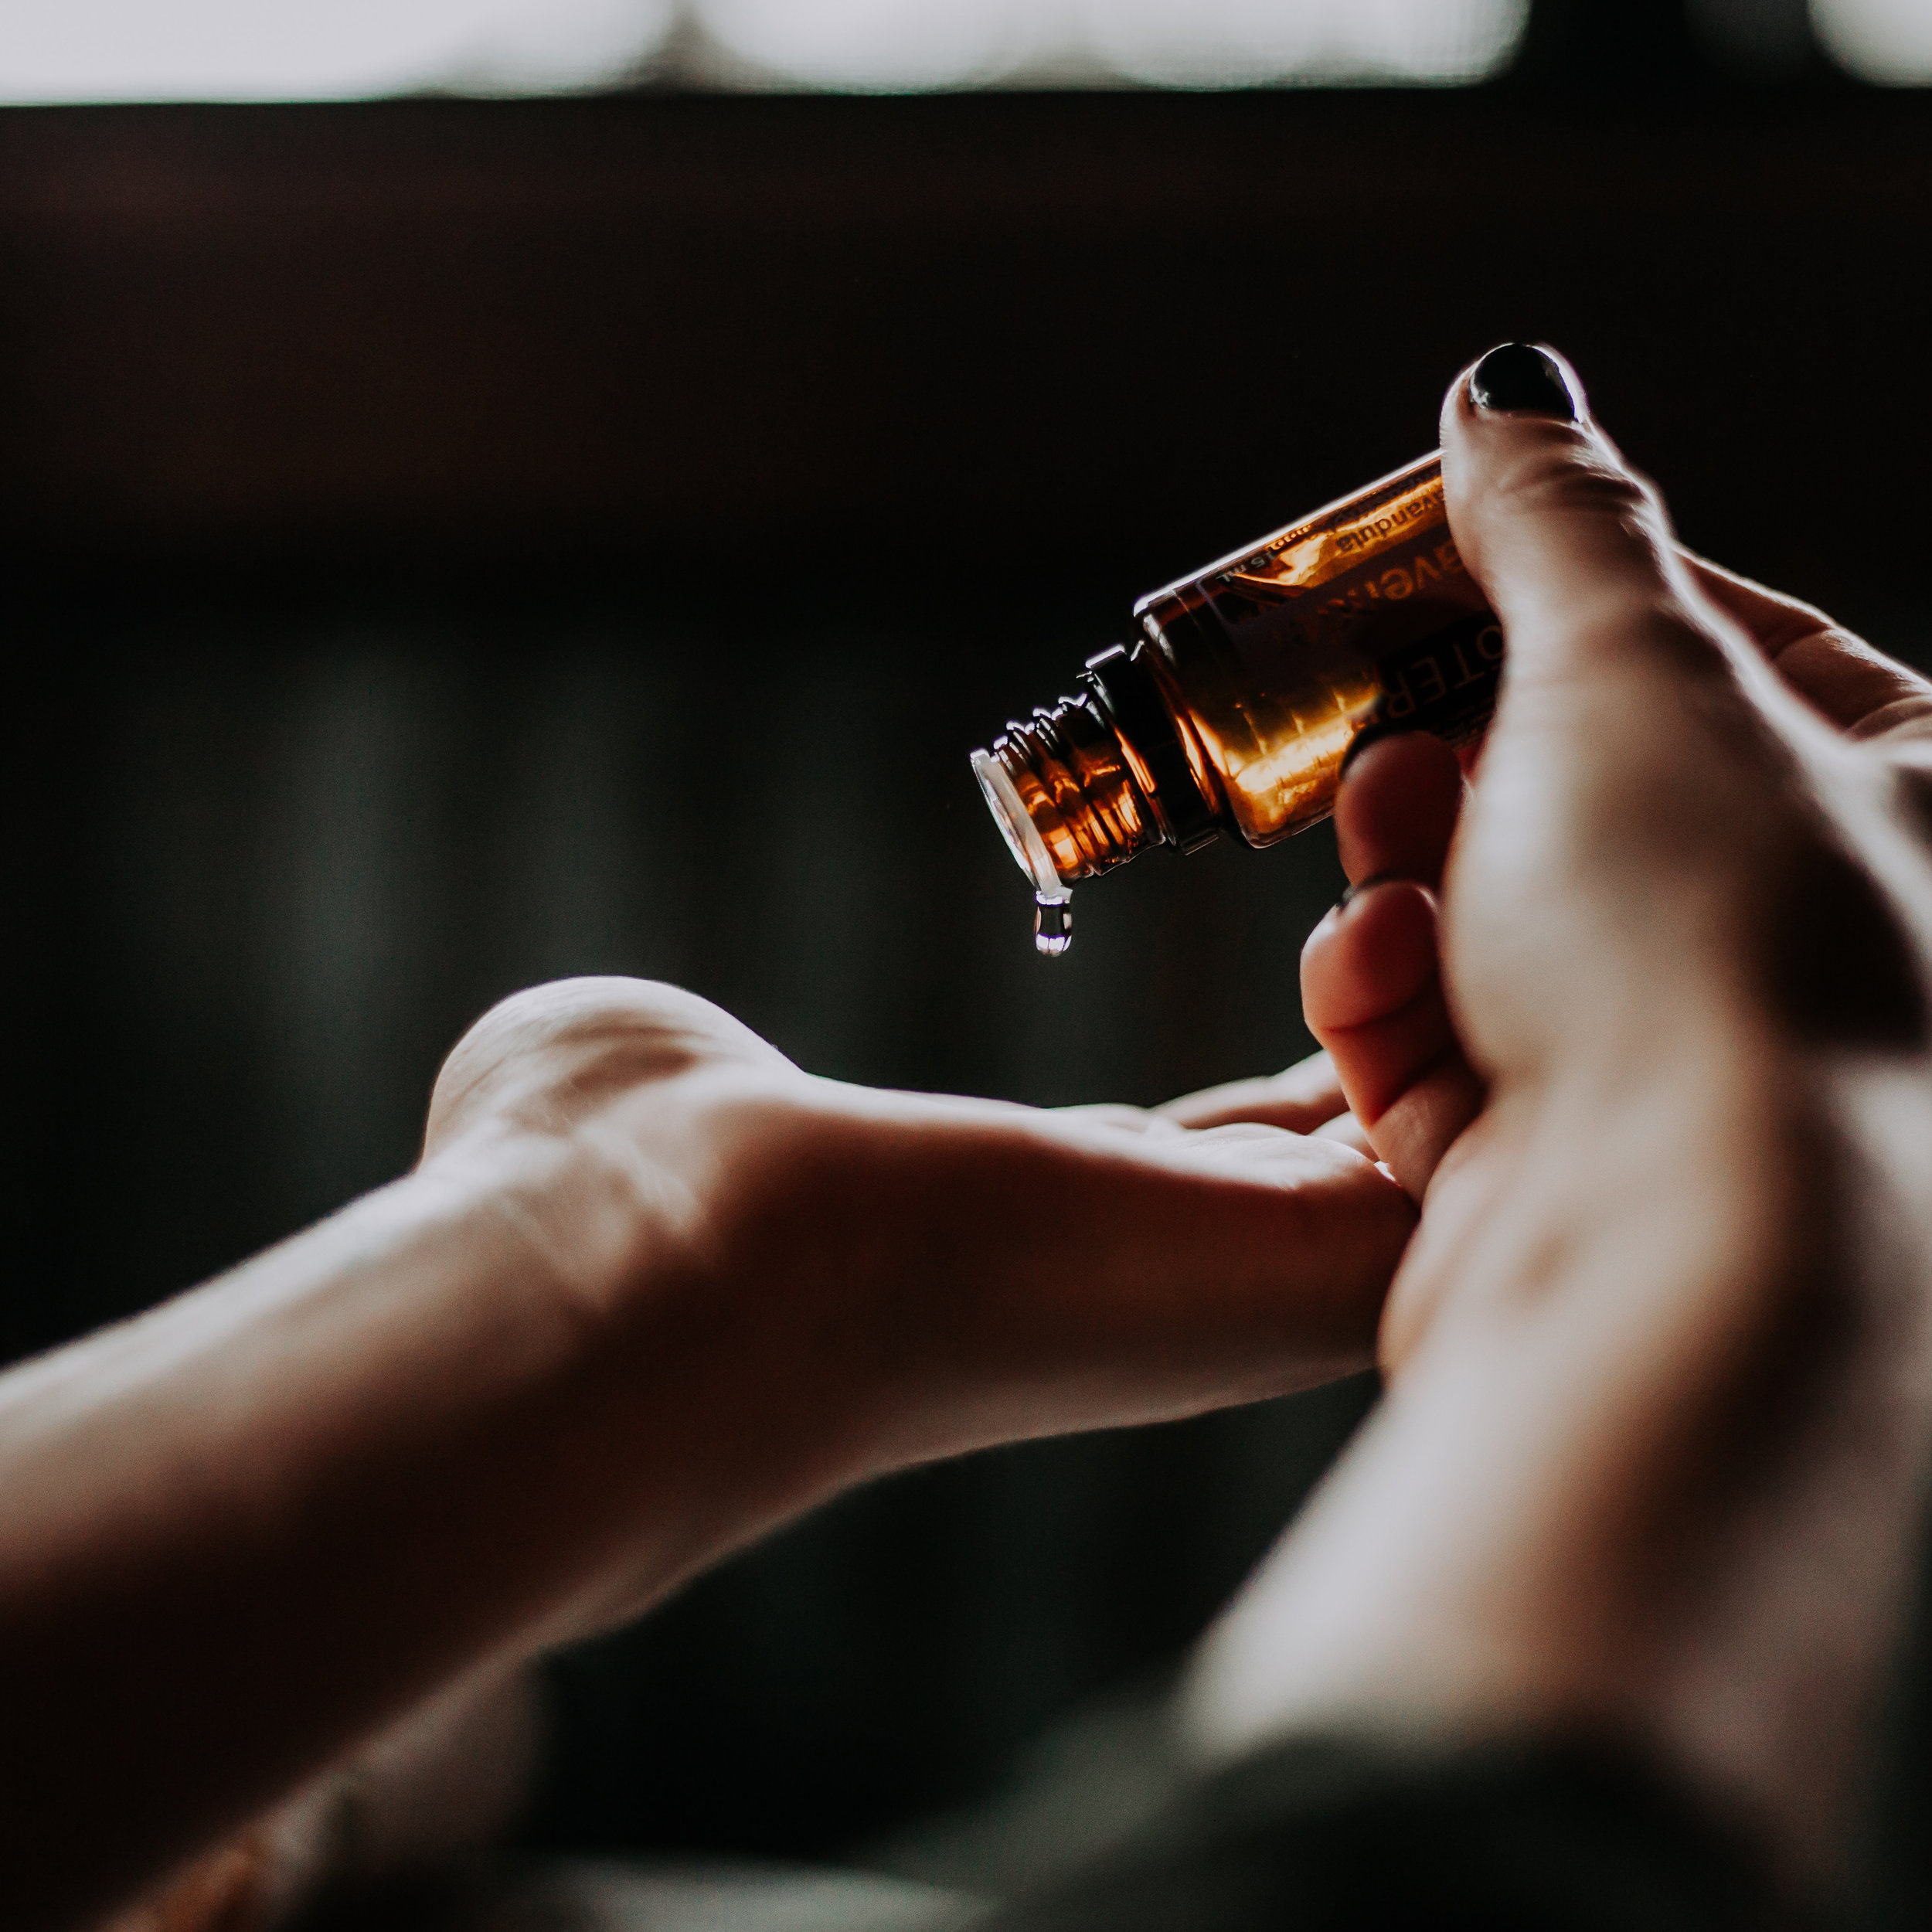 ESSENTIAL OILS - We carry a wide selection of high-quality essential oils, from lavender and peppermint to oregano and patchouli. Essential oils have a number of potential applications for example, acting as natural air fresheners, antibacterial solutions and headache relievers, to name a few.